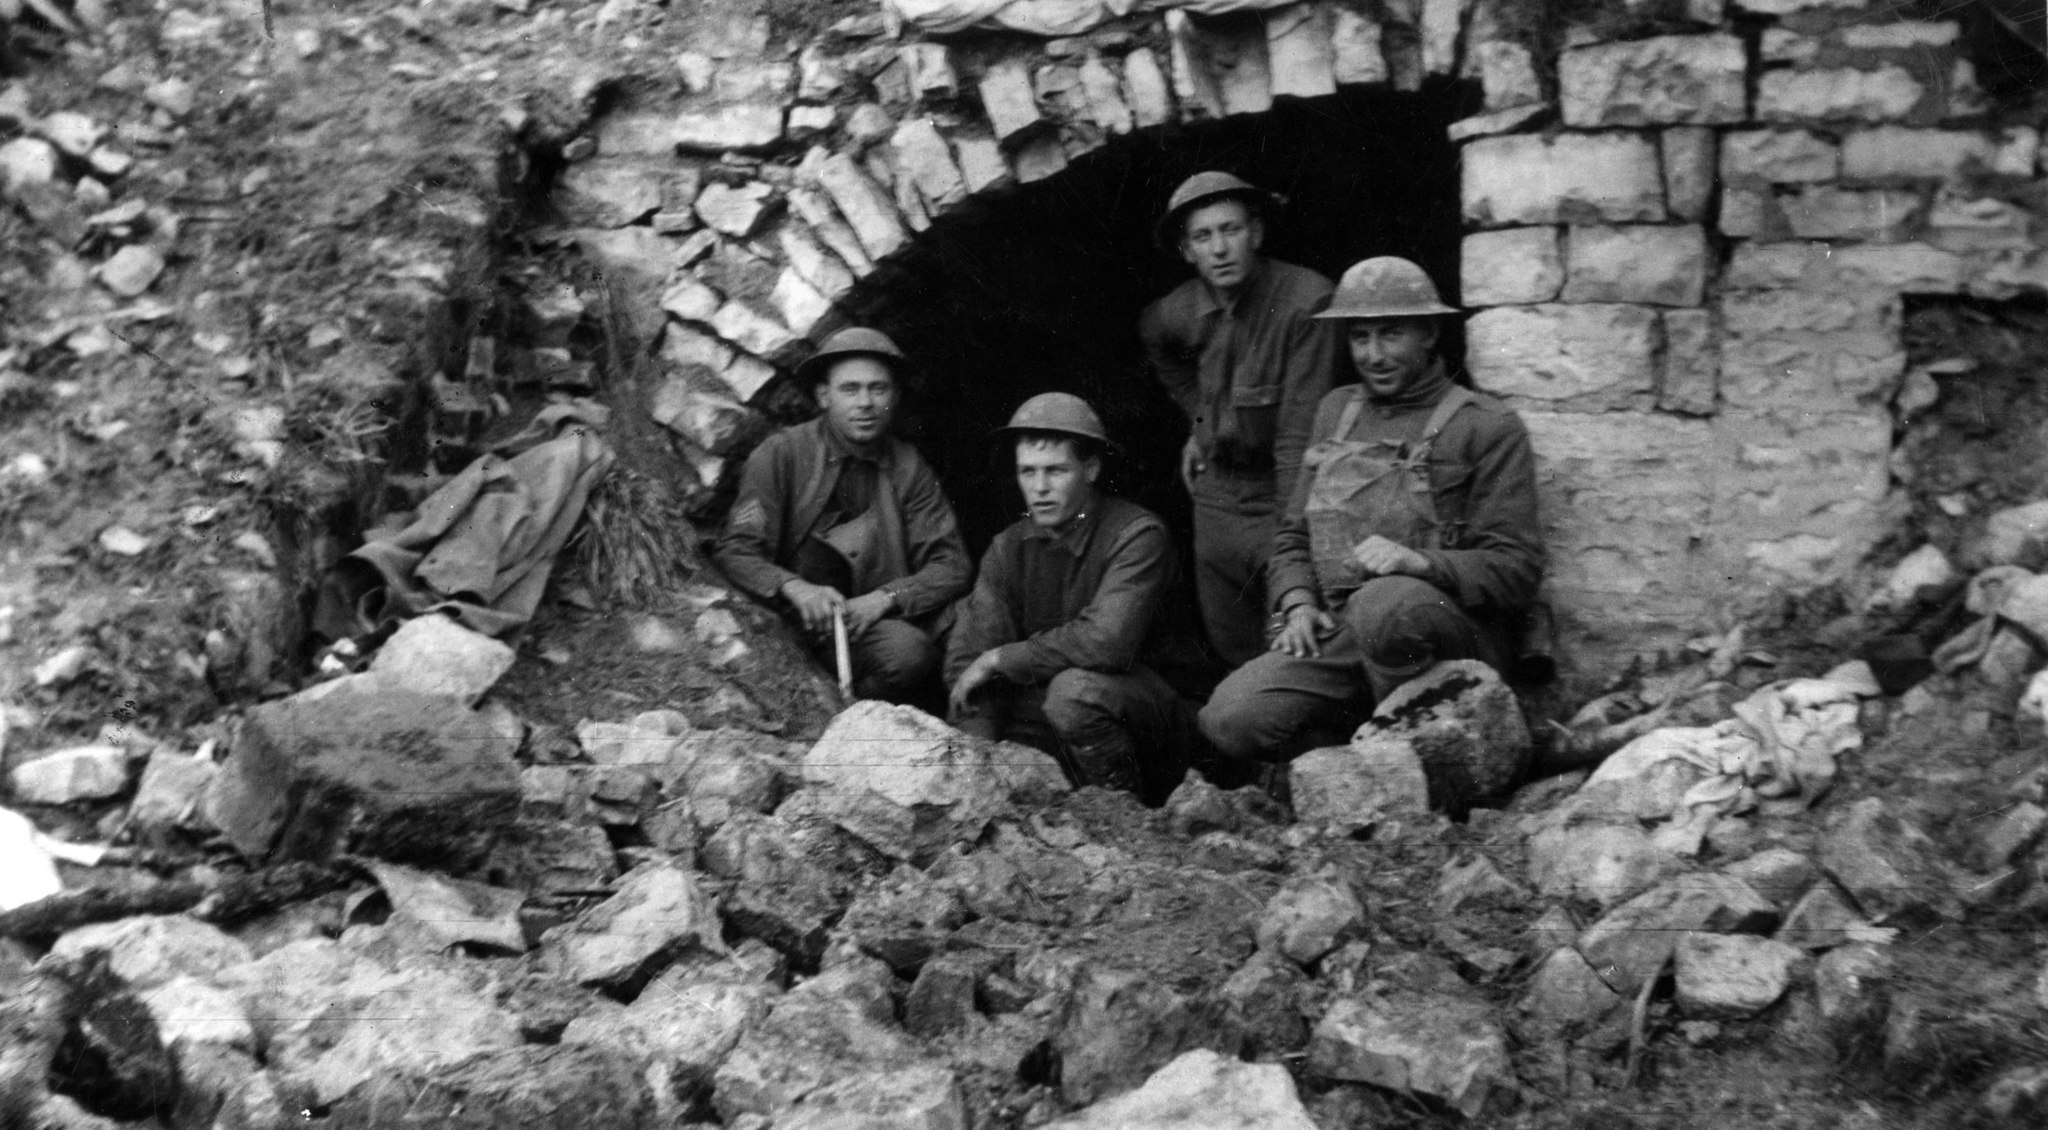 1918: California soldiers with the U.S. Army 91st Division in captured German dugout in Very, France